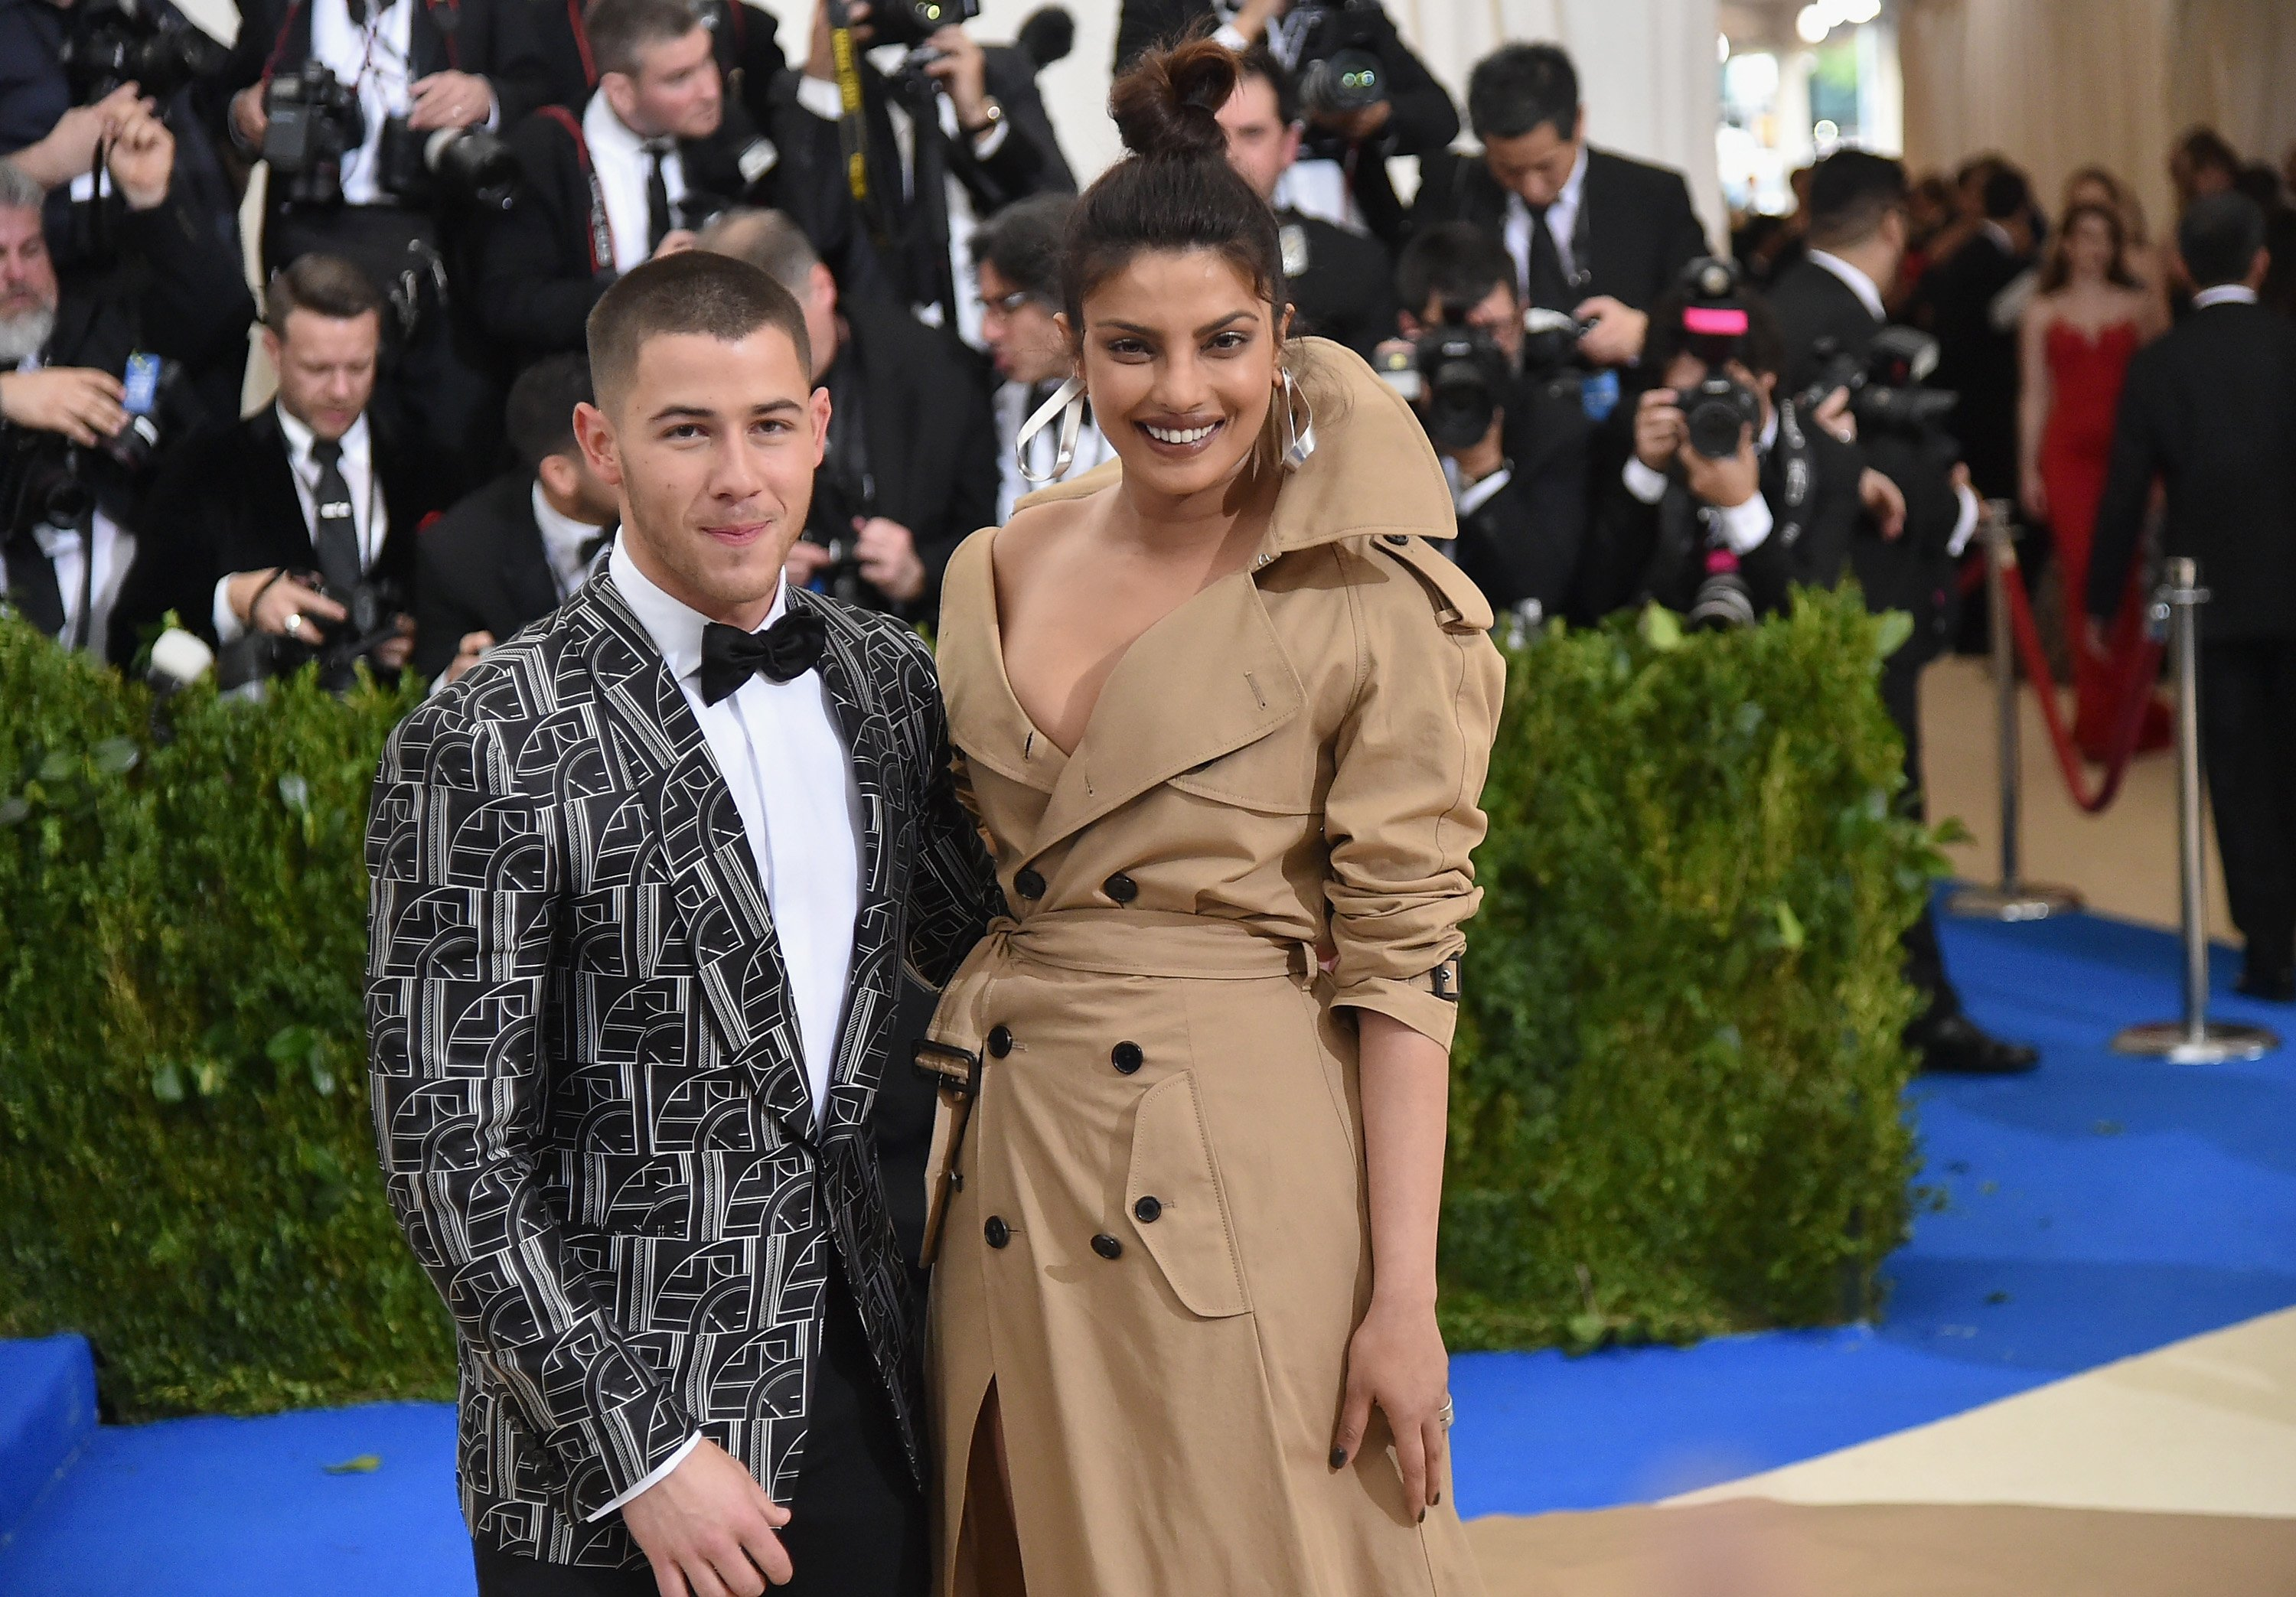 Nick Jonas and Priyanka Chopra attend the Costume Institute Gala in New York City on May 1, 2017 | Photo: Getty Images